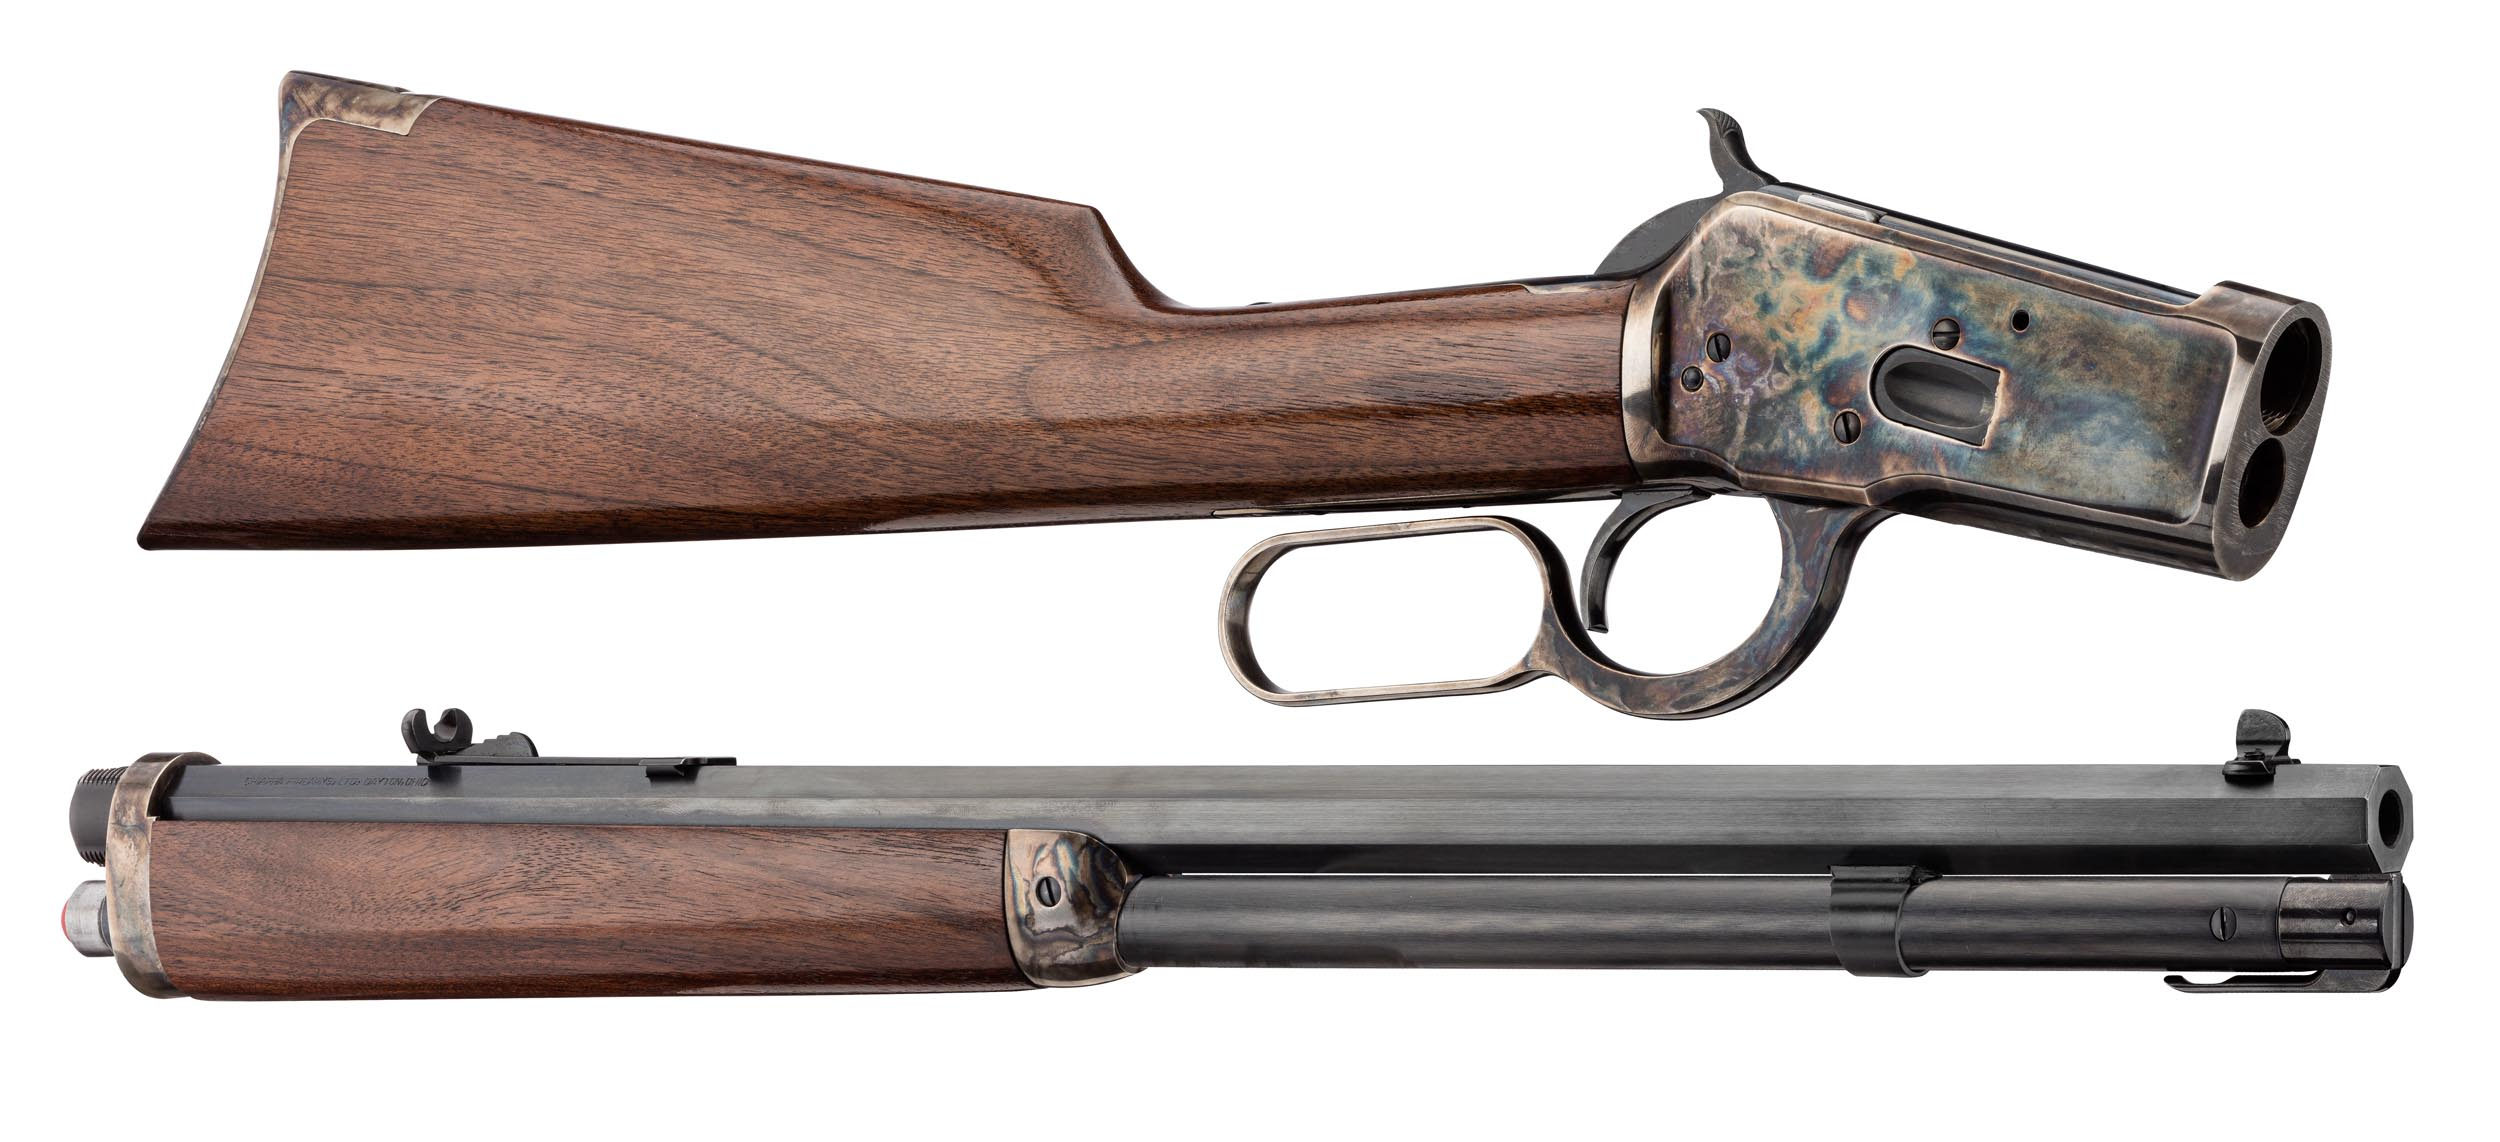 WE172-7 Chiappa 1892 Lever Action take down - Canon Octogonal - WE171